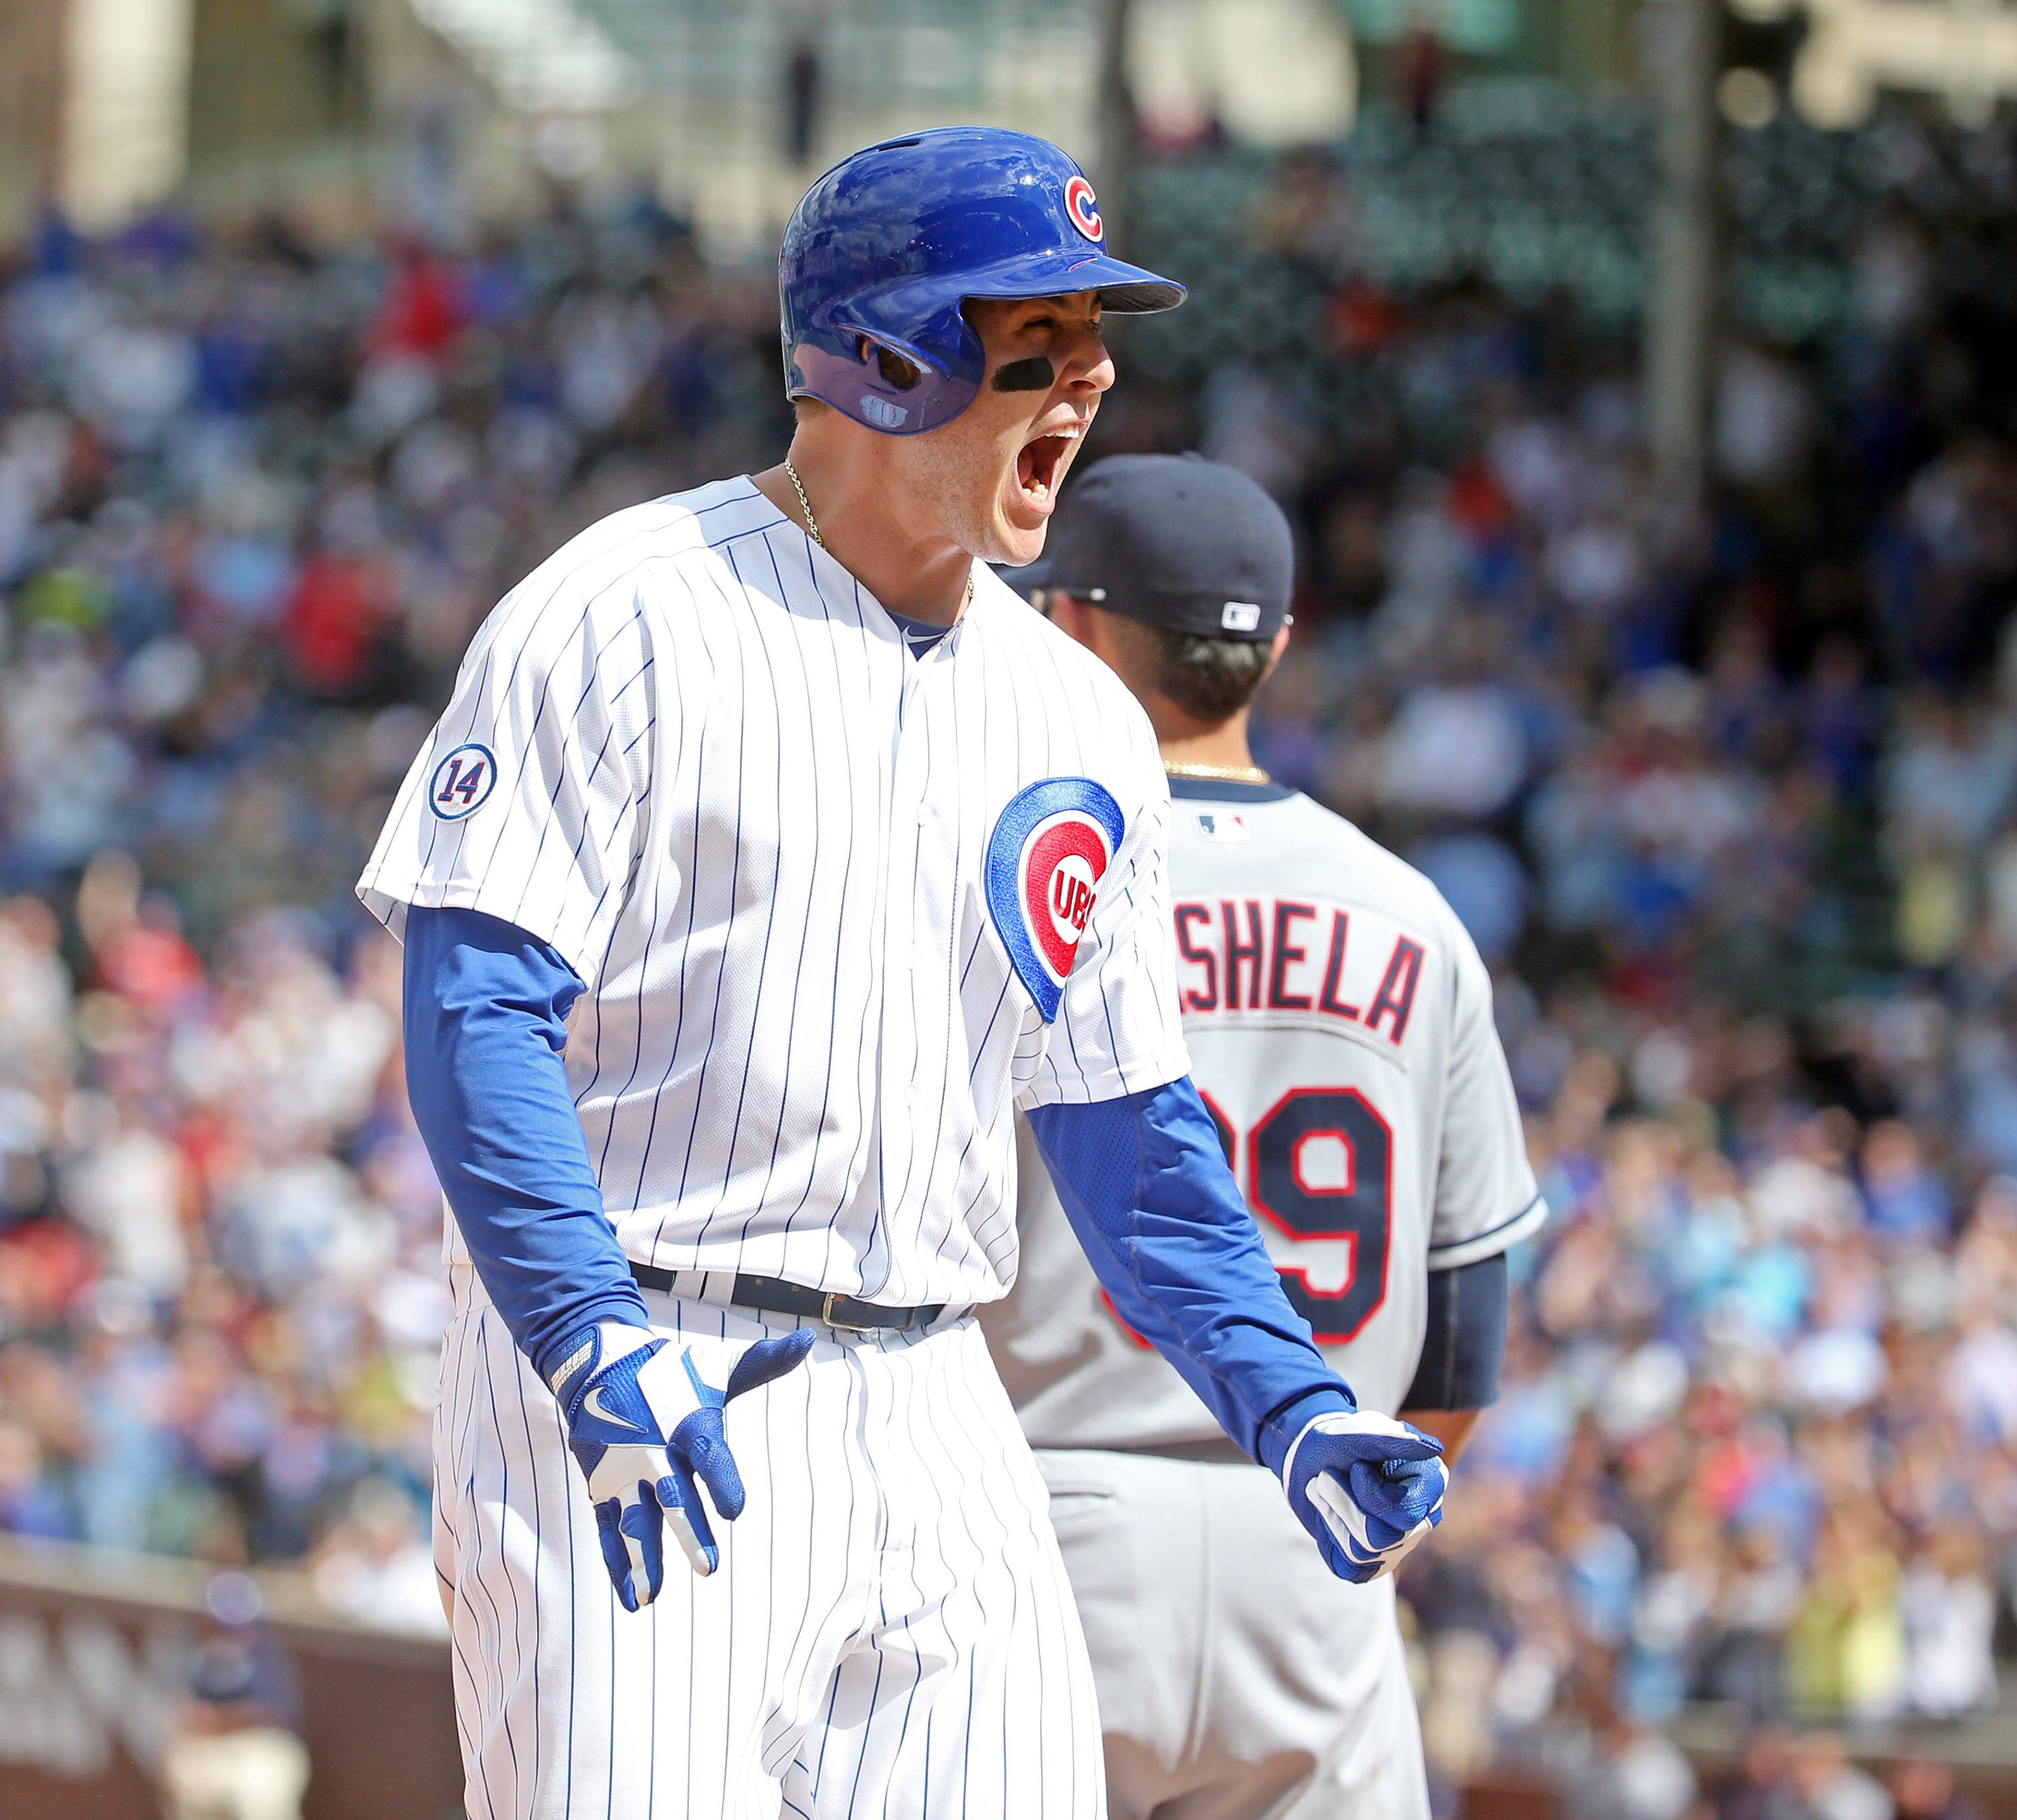 Chicago Cubs first baseman Anthony Rizzo (44) celebrates his RBI triple during the seventh inning on Monday, Aug. 24, 2015, at Wrigley Field in Chicago. (Brian Cassella/Chicago Tribune/TNS)